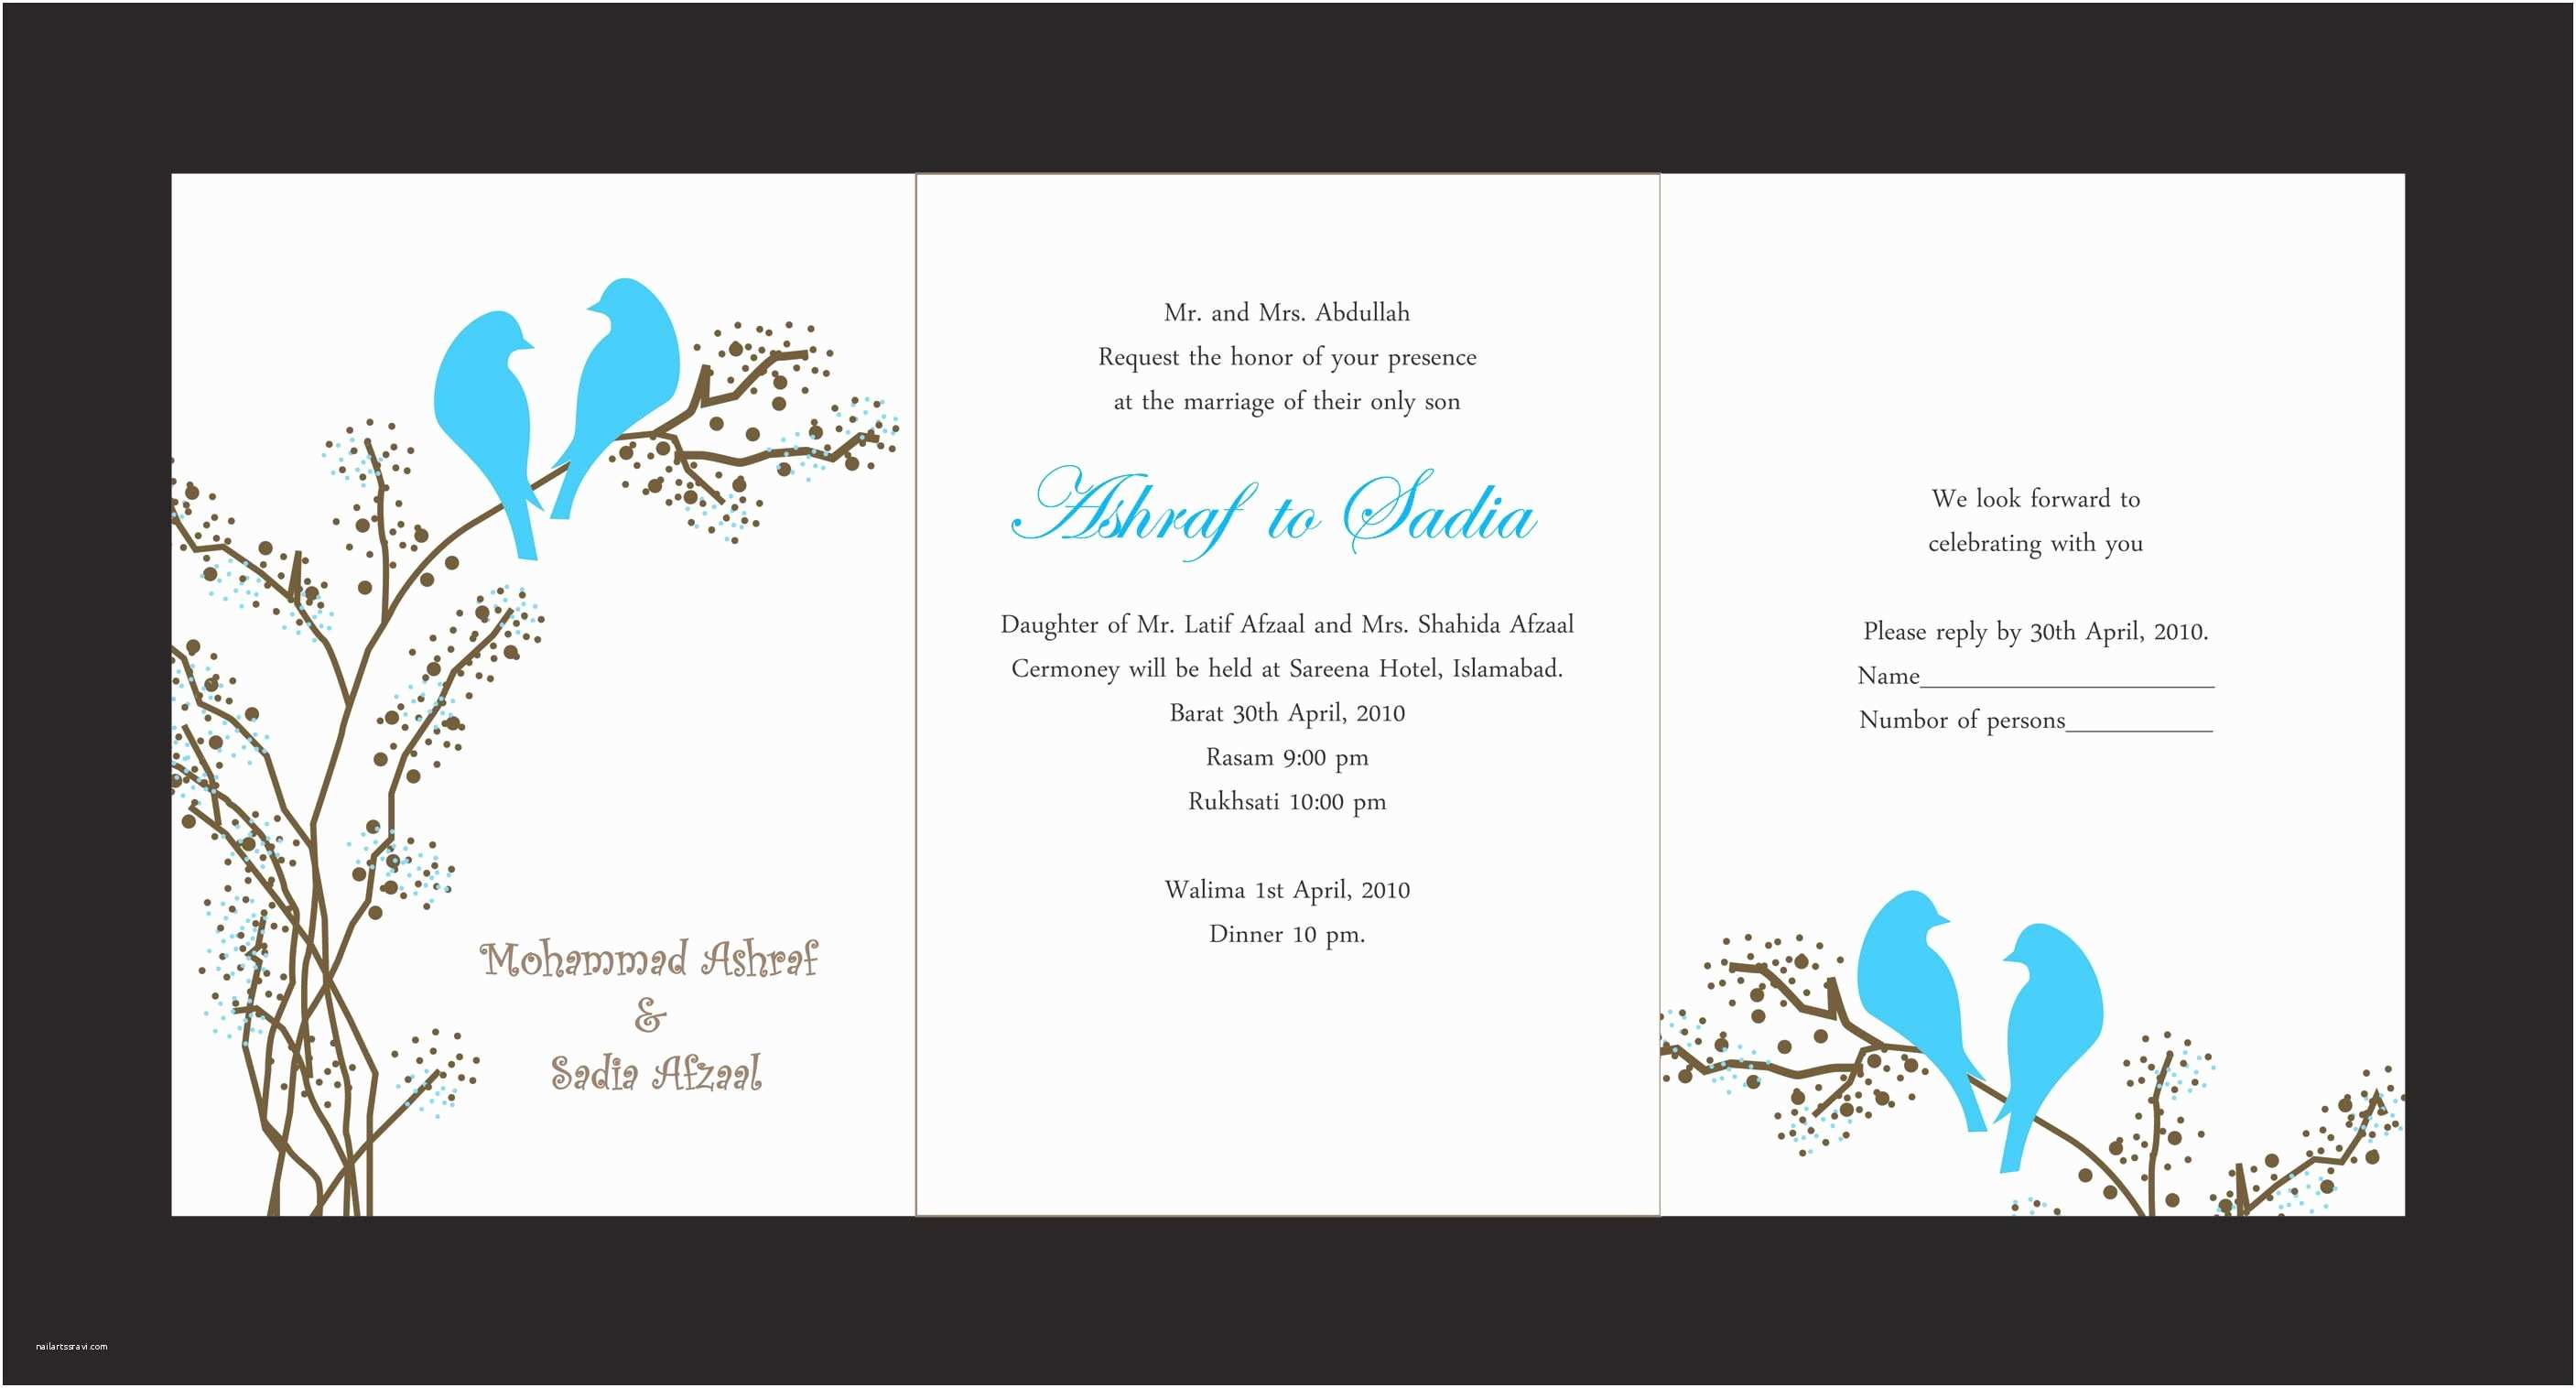 Wedding Invitation Cards Online Card Template Best Wedding Invitations Cards Card